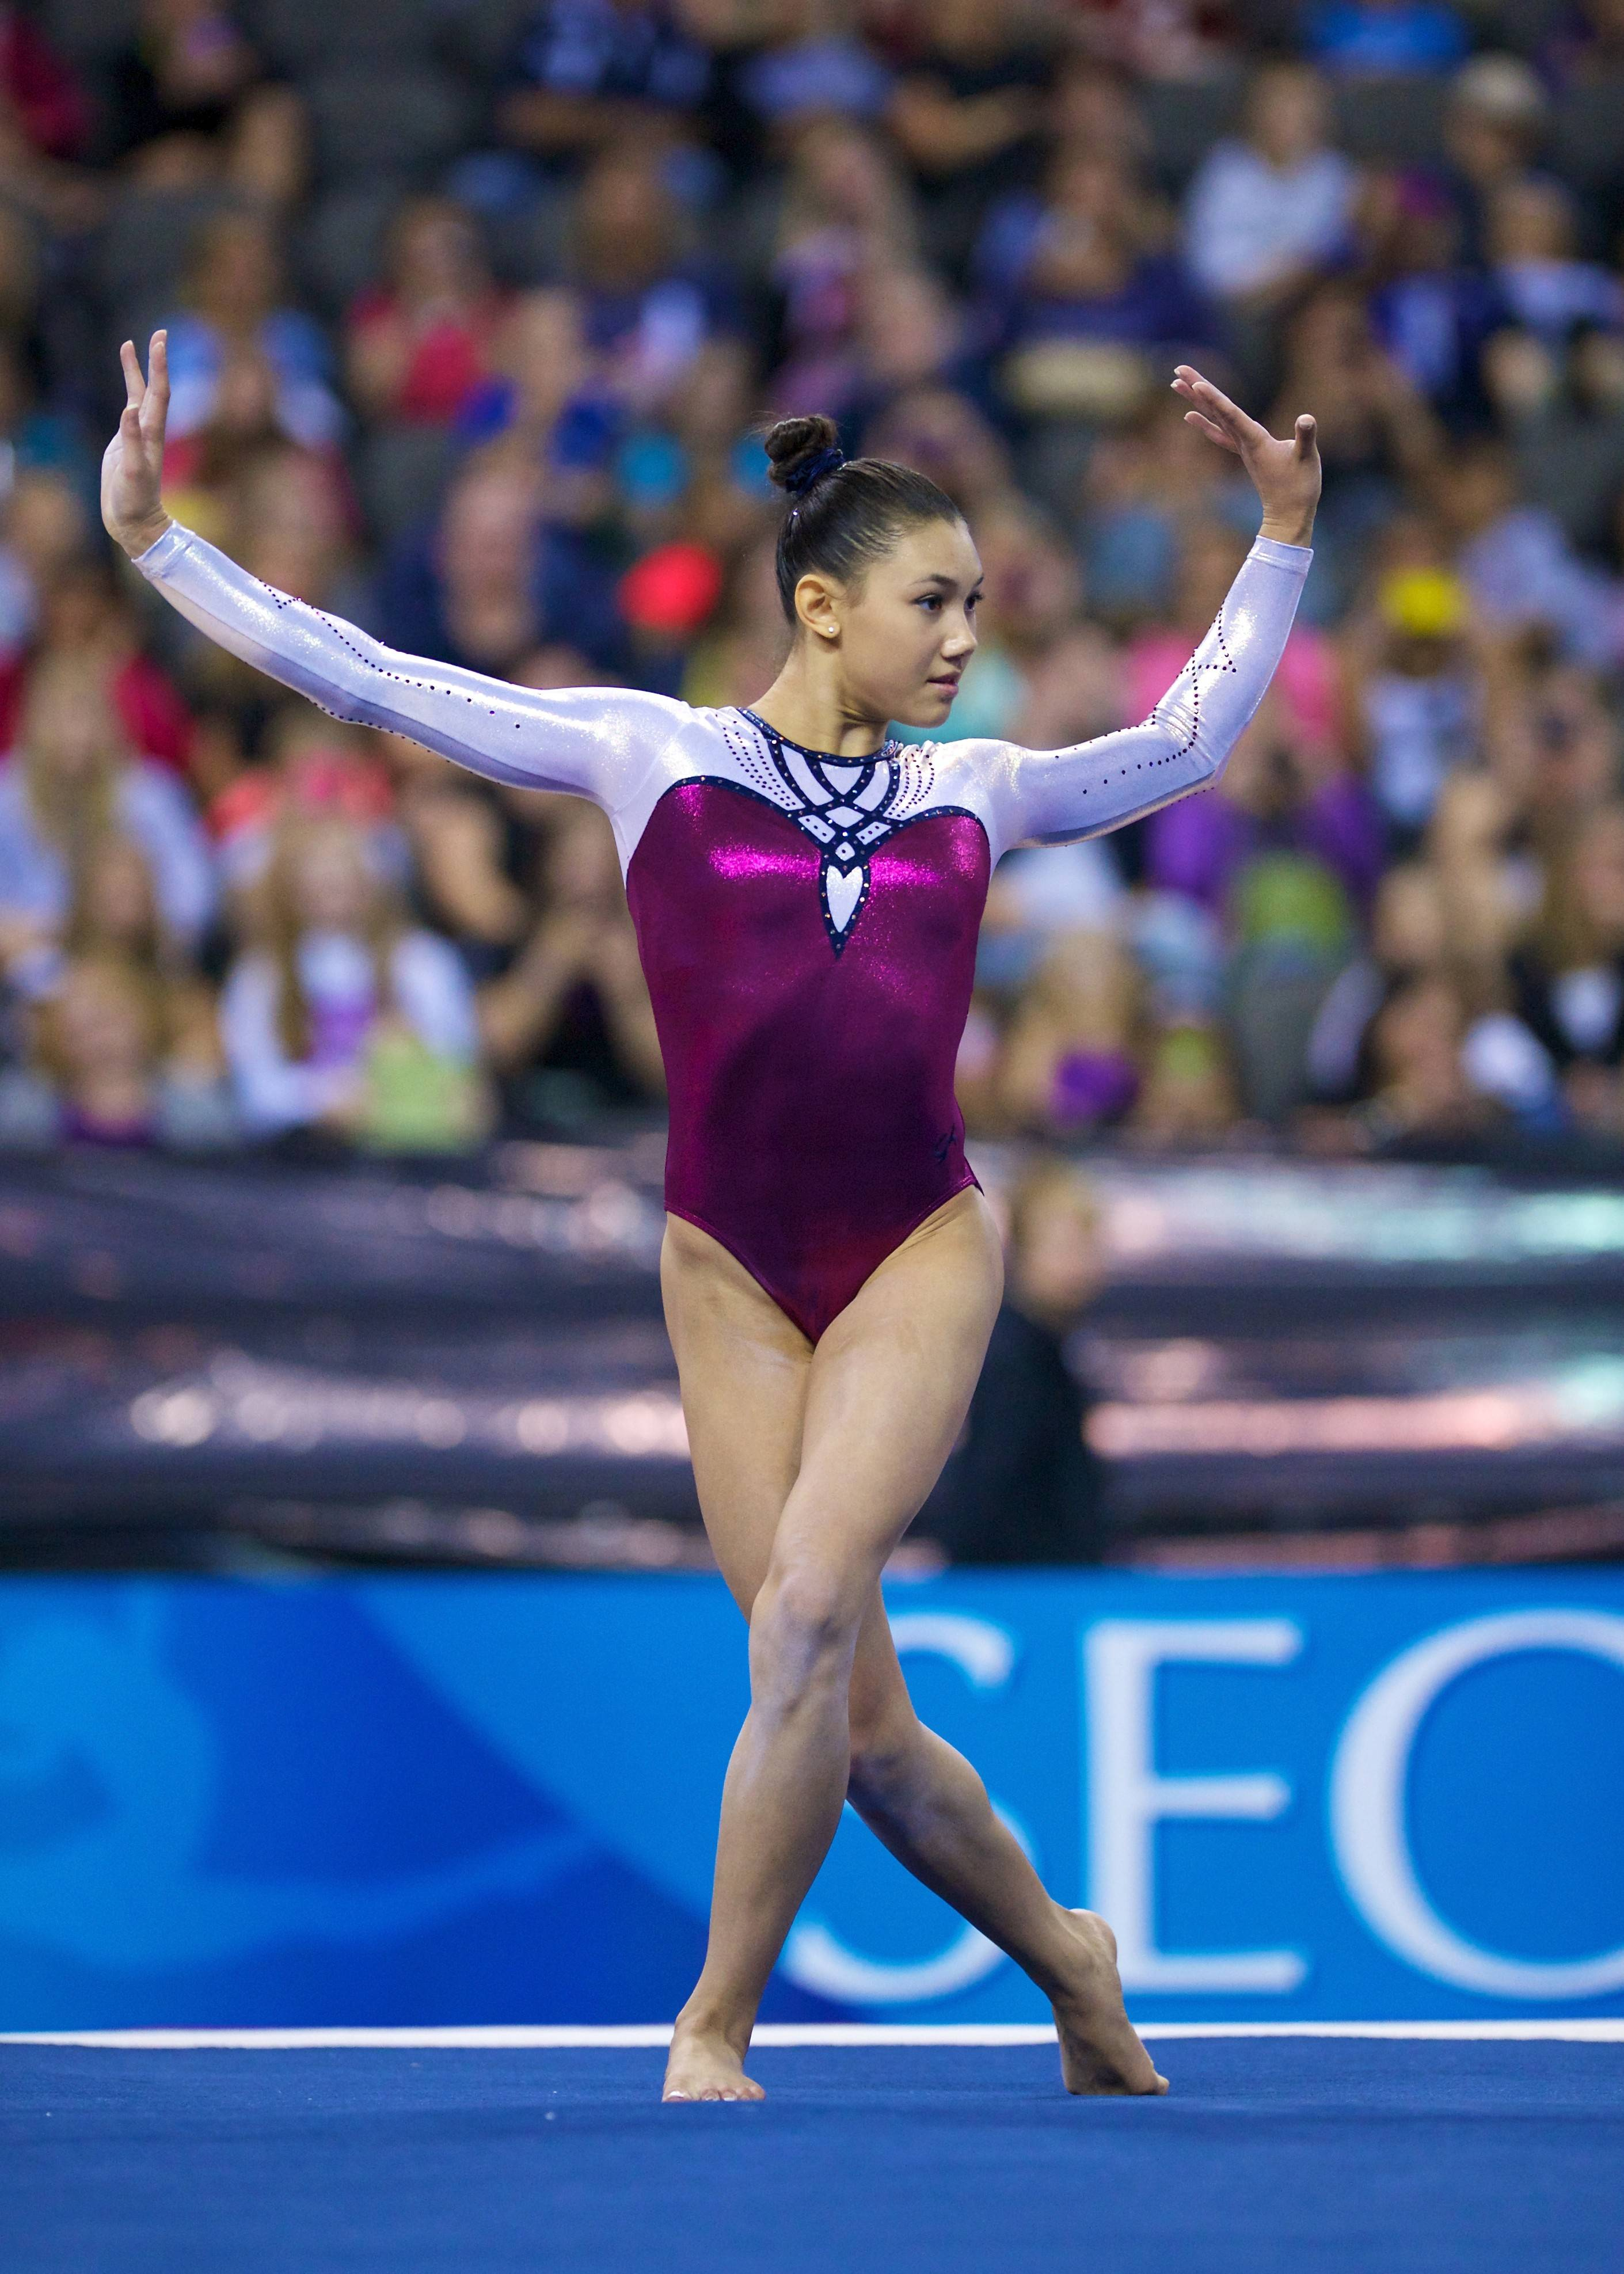 Olympian Kyla Ross won the 2013 Secret U.S. Classic at the Sears Centre Arena in Hoffman Estates last summer. The event will return to the suburbs this summer, with world-class gymnasts again expected to compete.